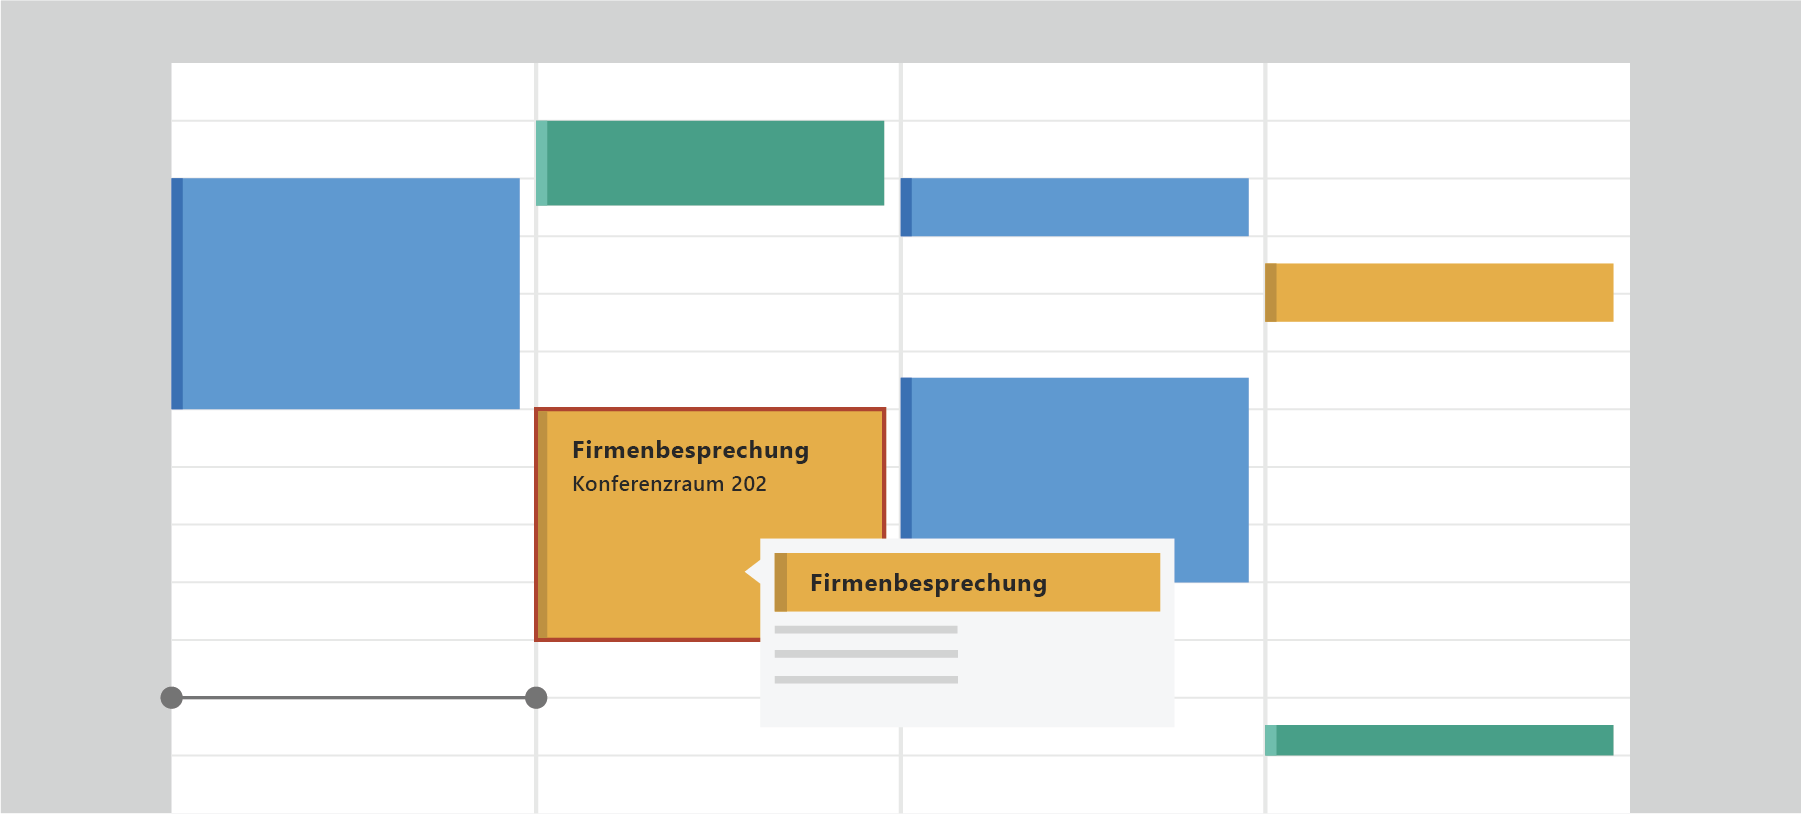 Zeigt den Outlook-Kalender